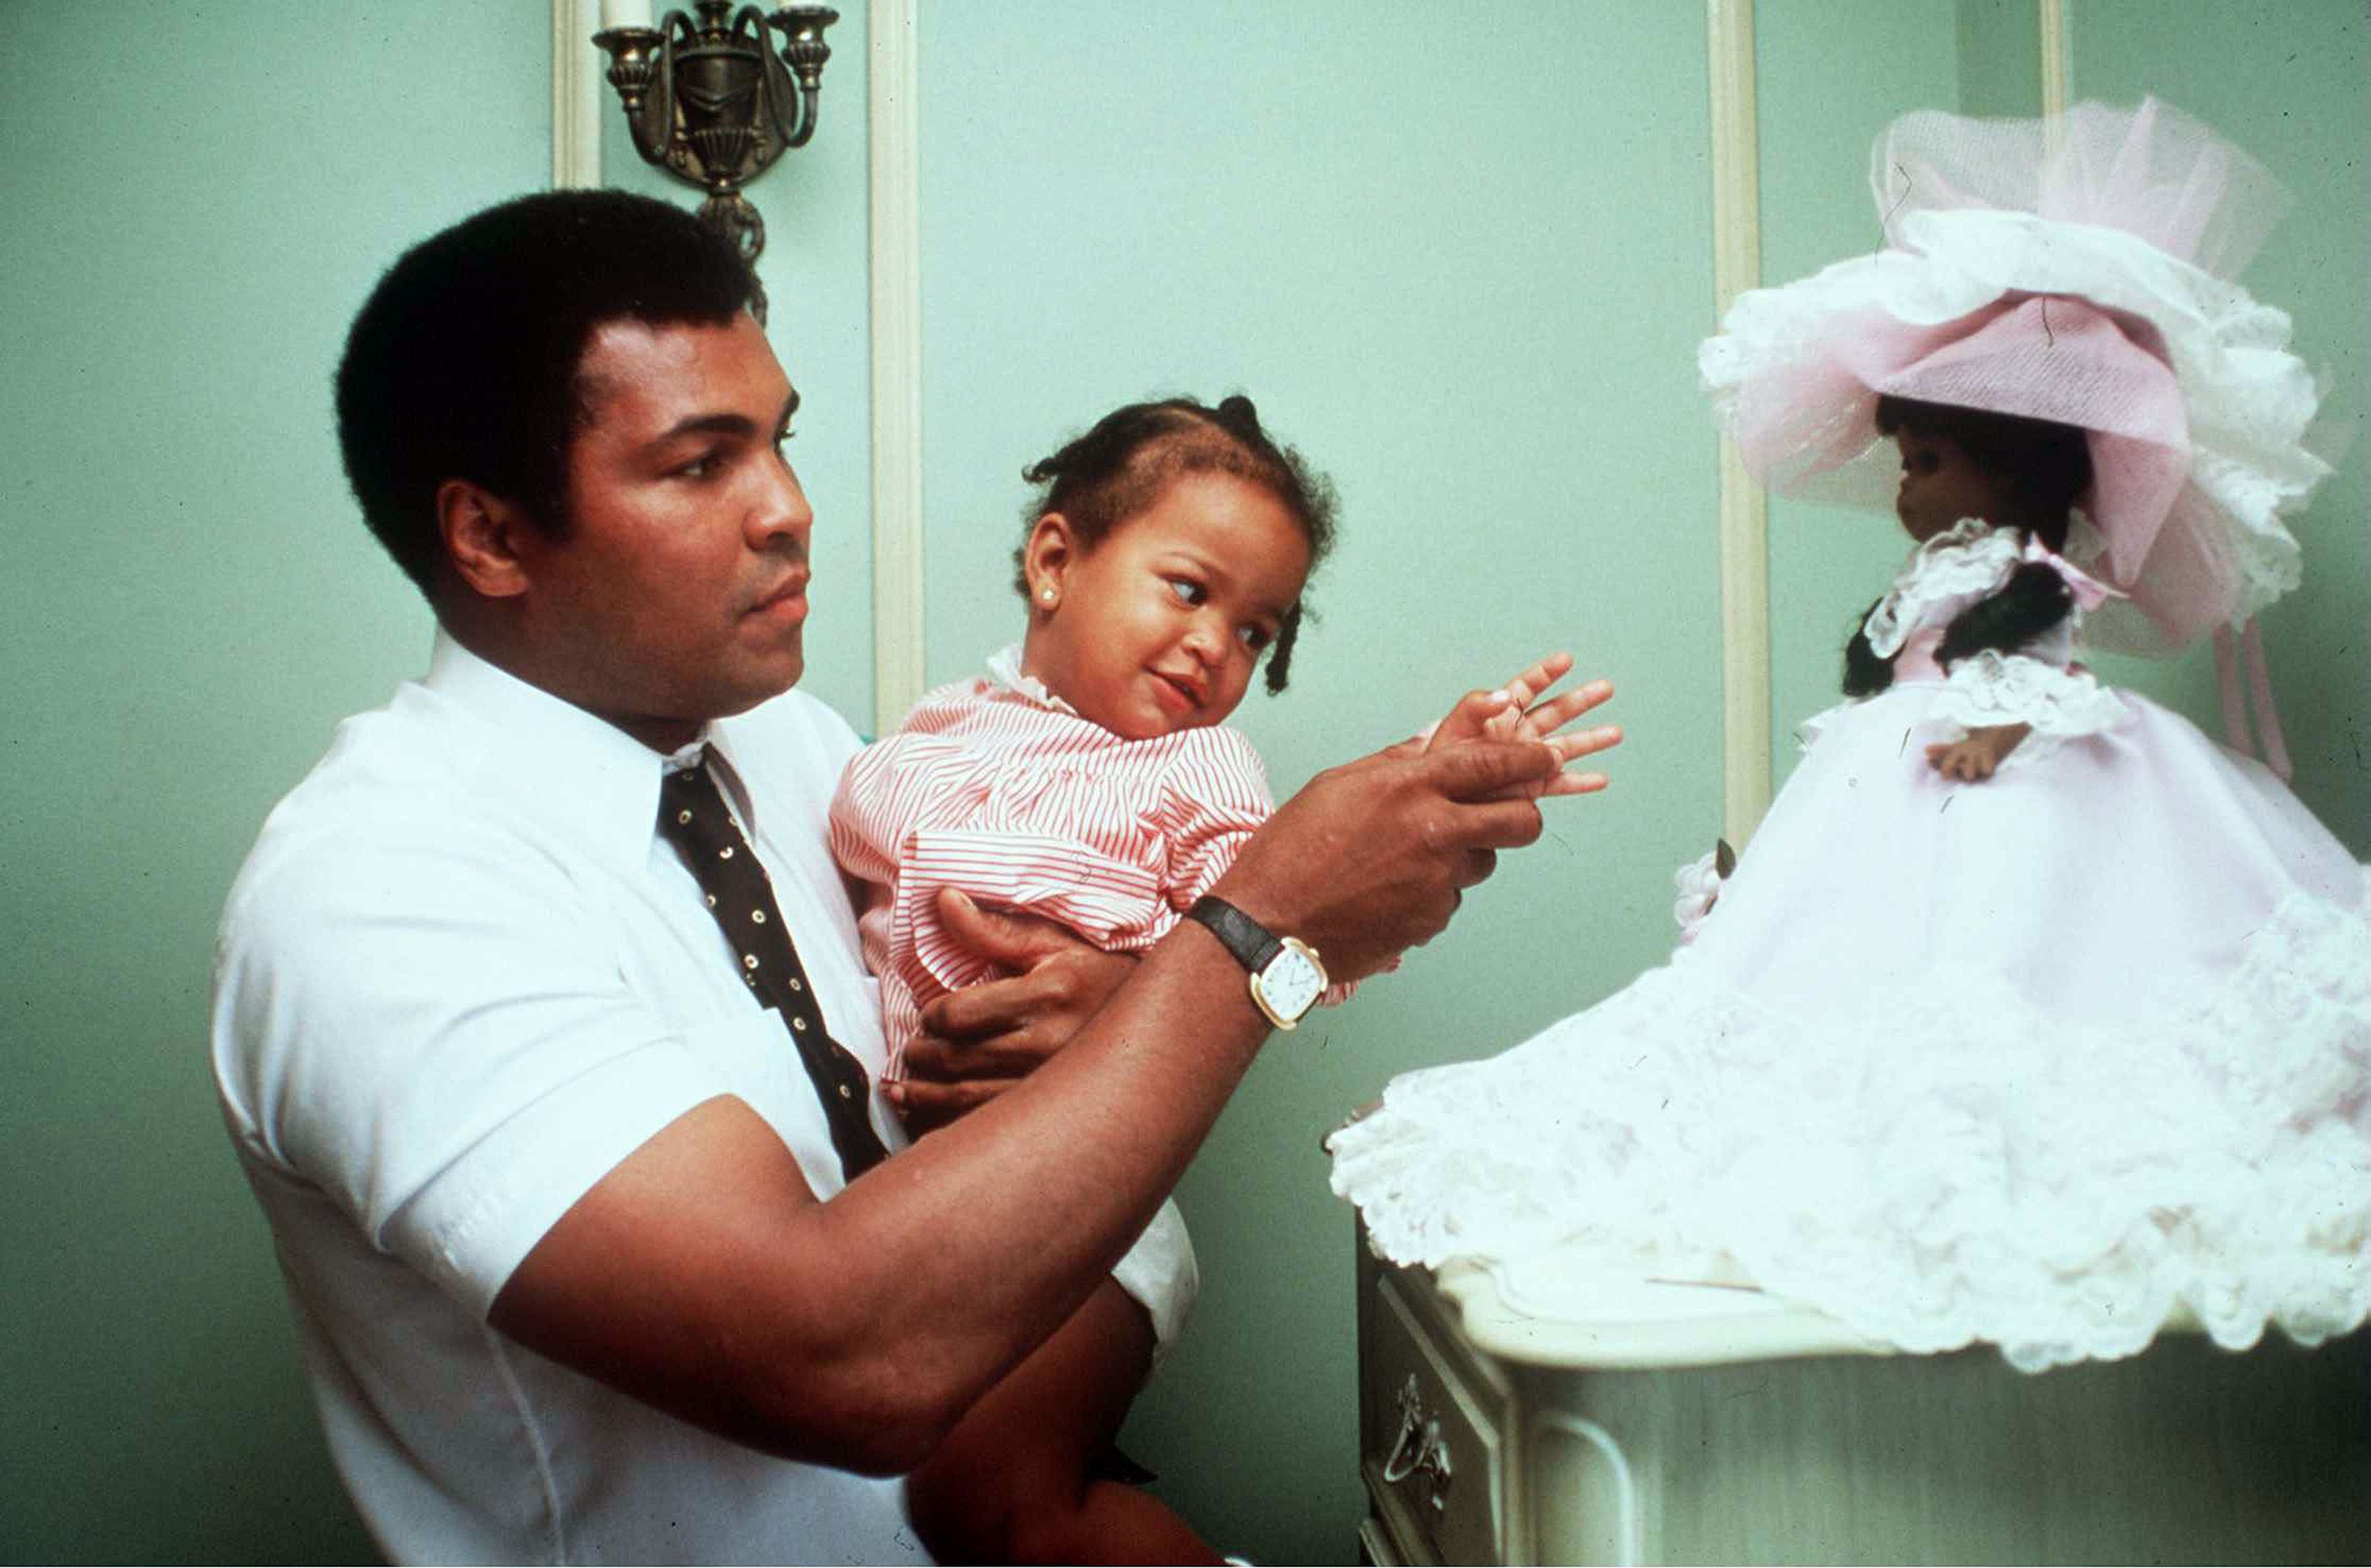 3113 LOS ANGELES CALIFORNIA May 3, 1980 Muhammad Ali with his daughter Laila Ali when she was 2 in his Hancock Park home before his last fight with Larry Holmes wich took place in Las Vegas, 2nd October 1980., Image: 288875235, License: Rights-managed, Restrictions: , Model Release: no, Credit line: Profimedia, Pacific coast news